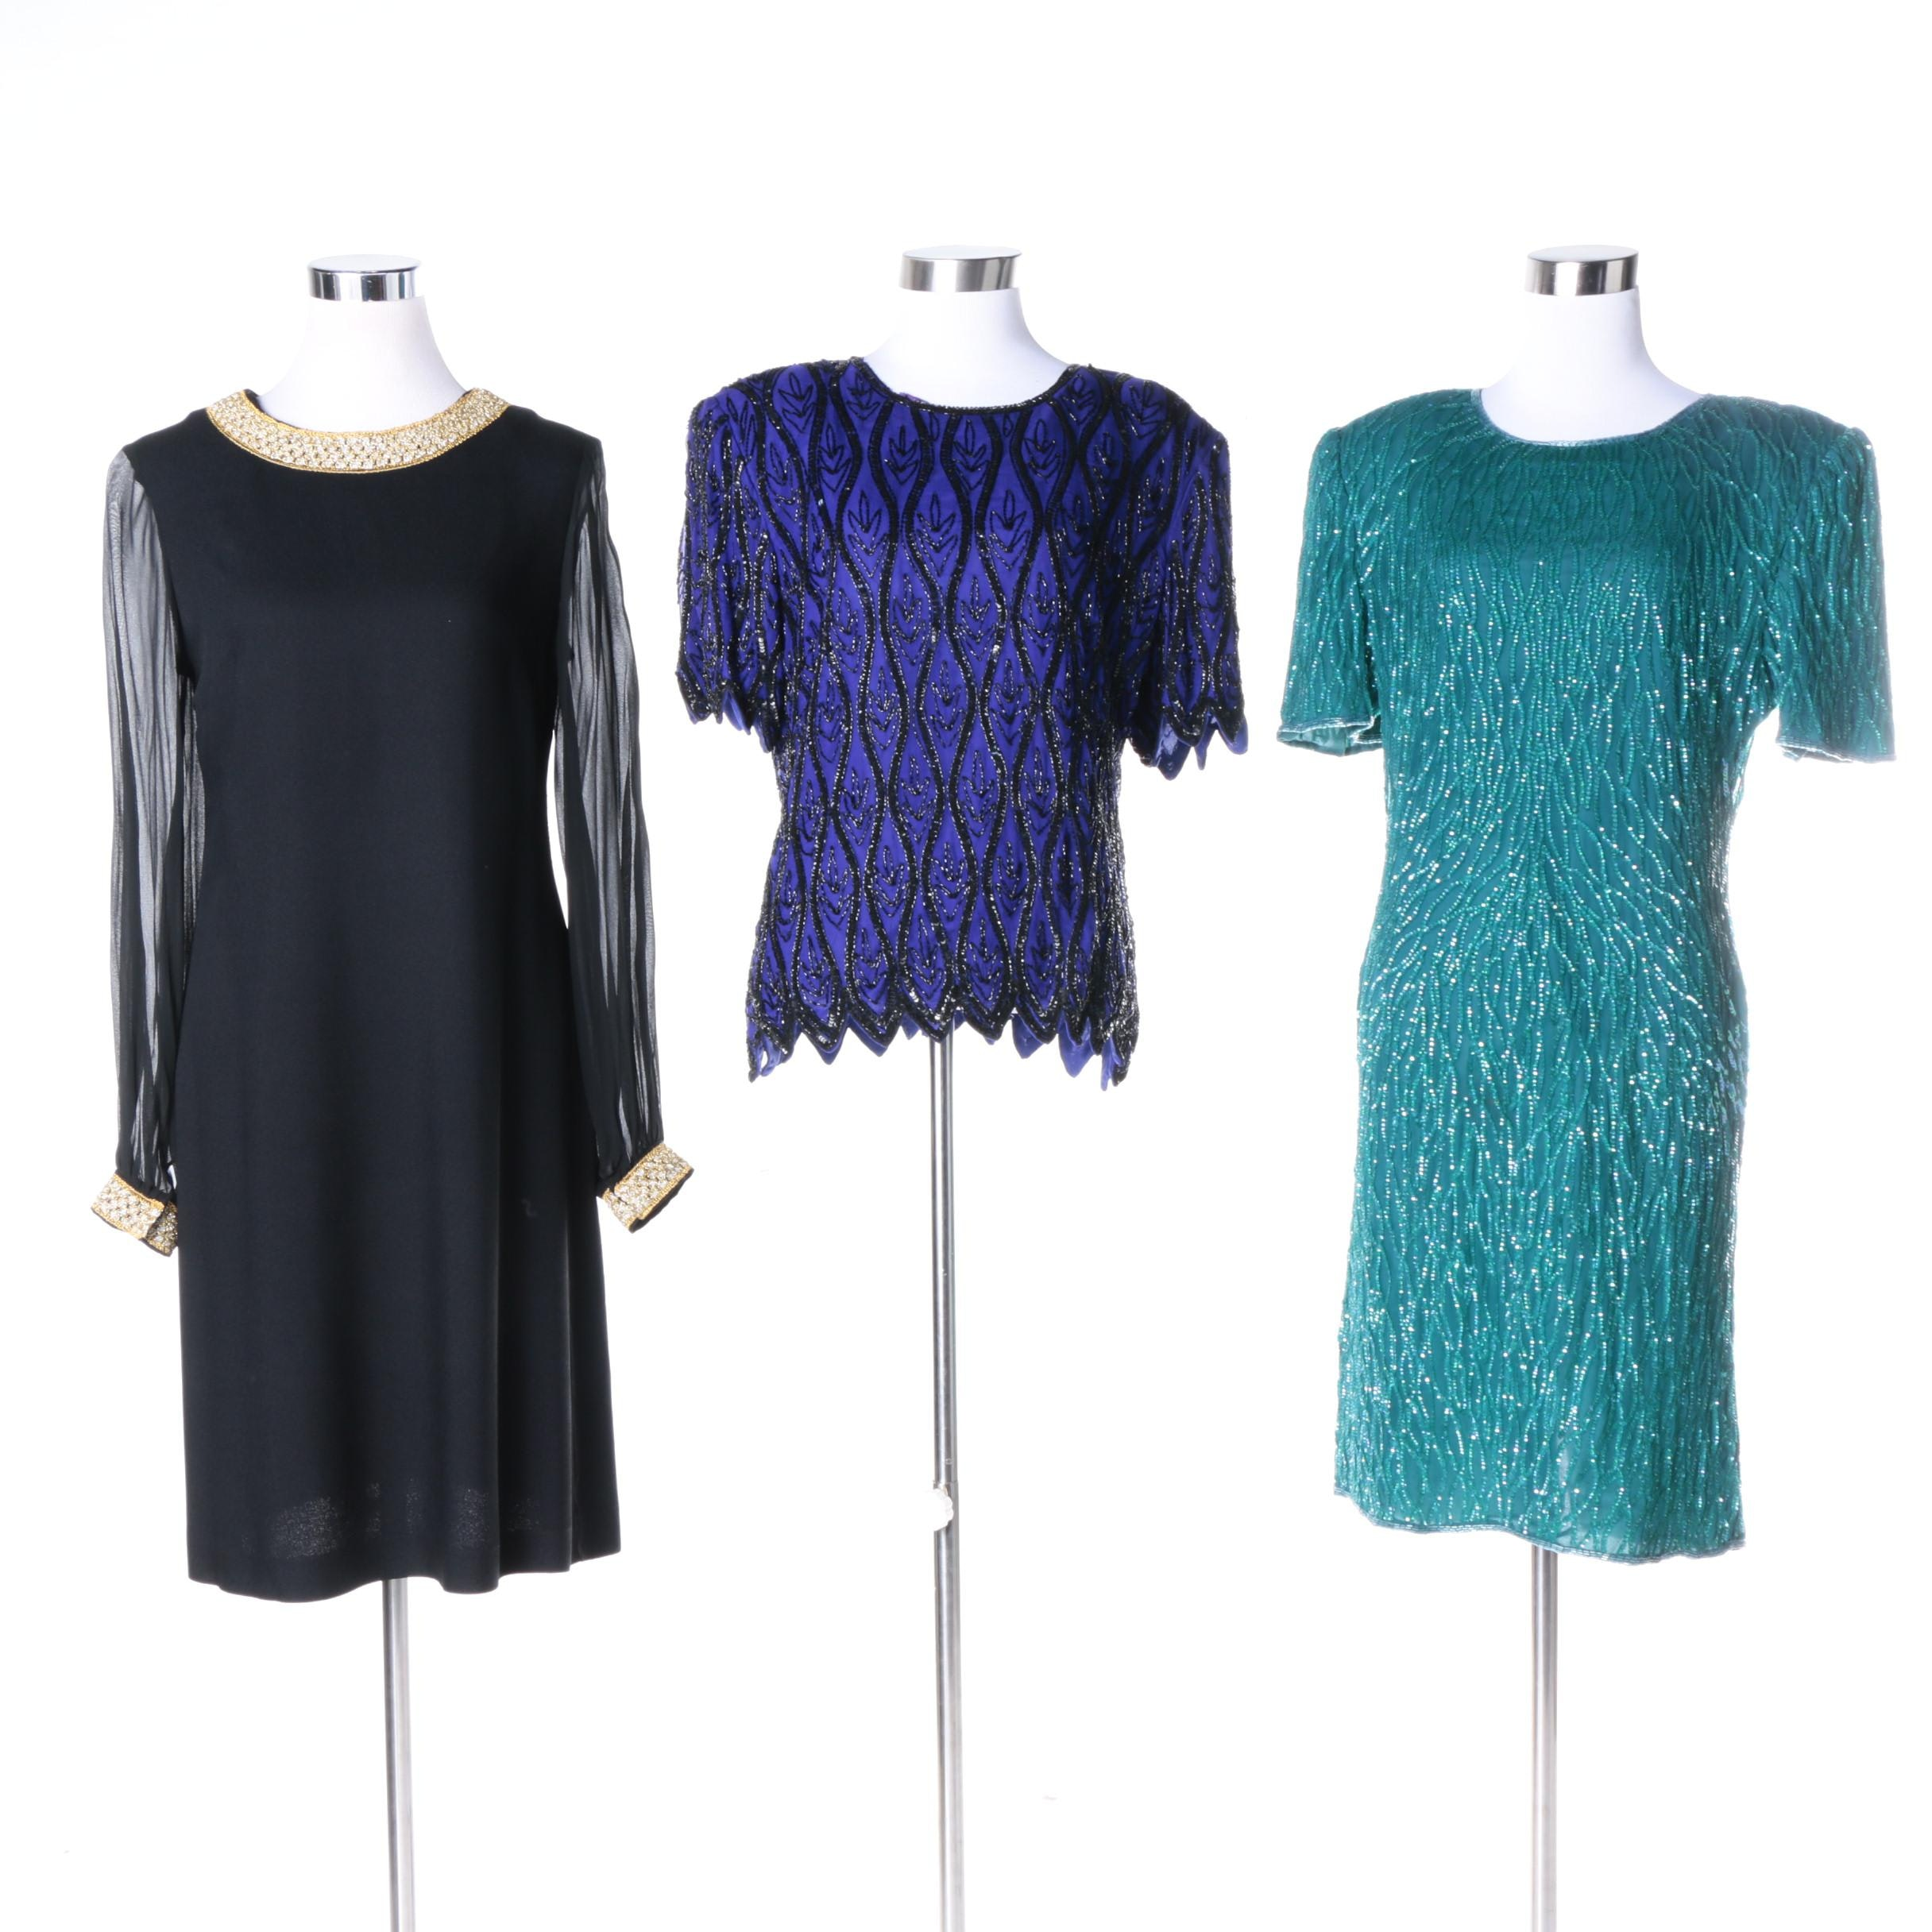 Vintage Embellished Dresses and Top Including Laurence Kazar